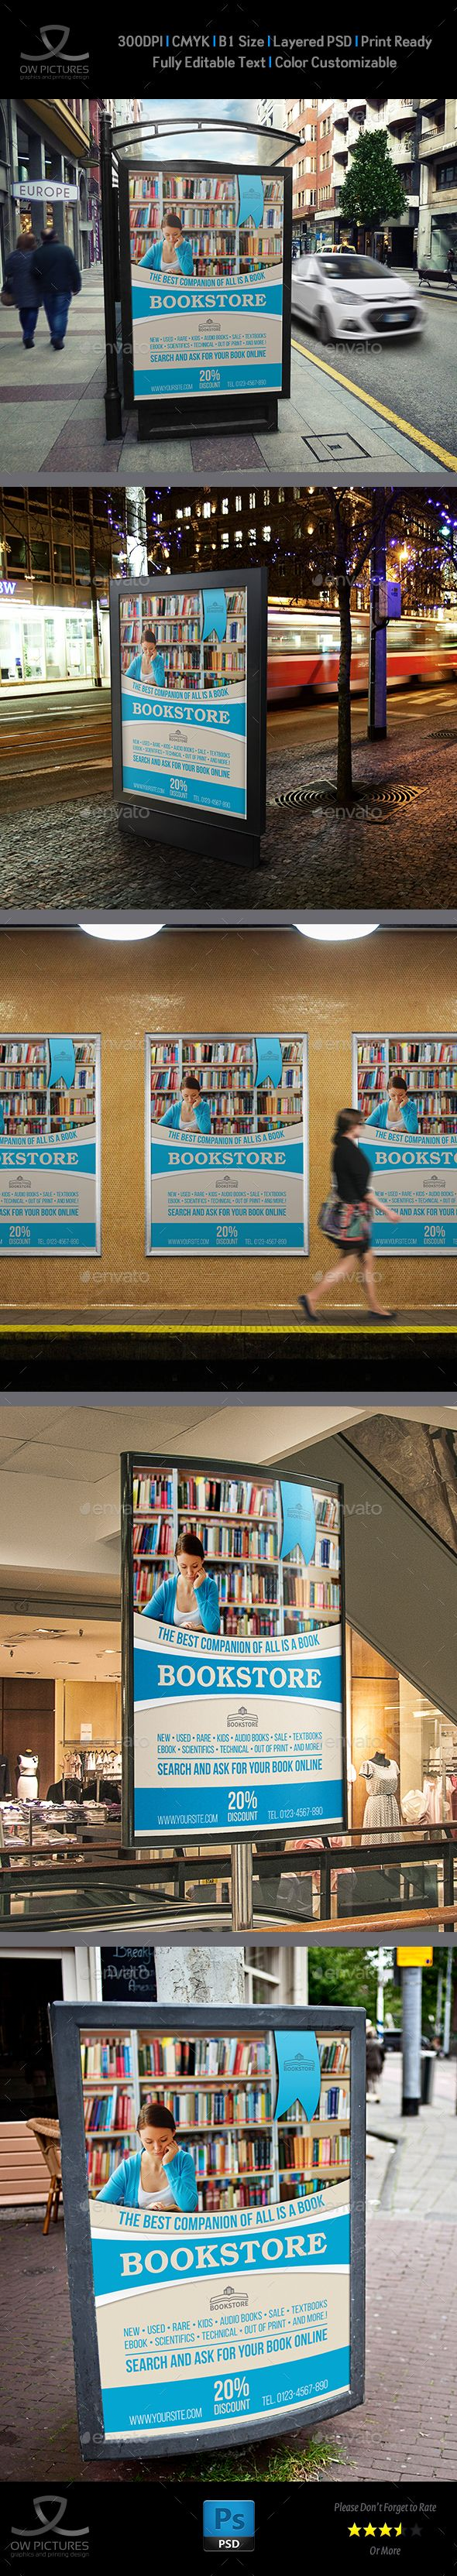 Bookstore Poster Template by OWPictures Poster Description: Bookstore Poster Tem...